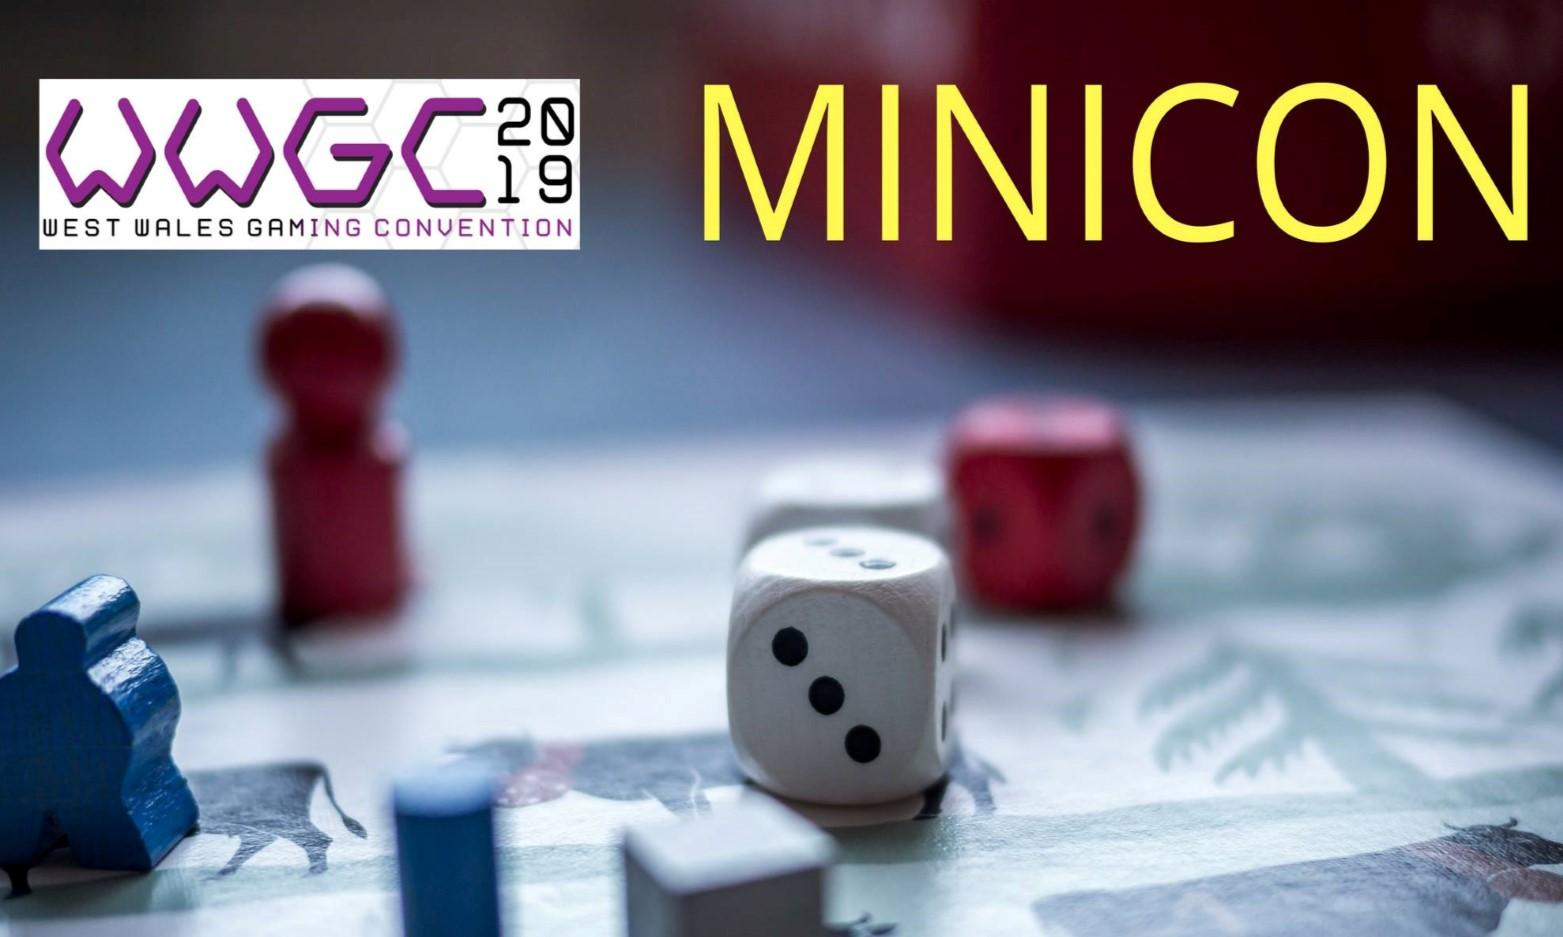 West Wales Mini Gaming Convention